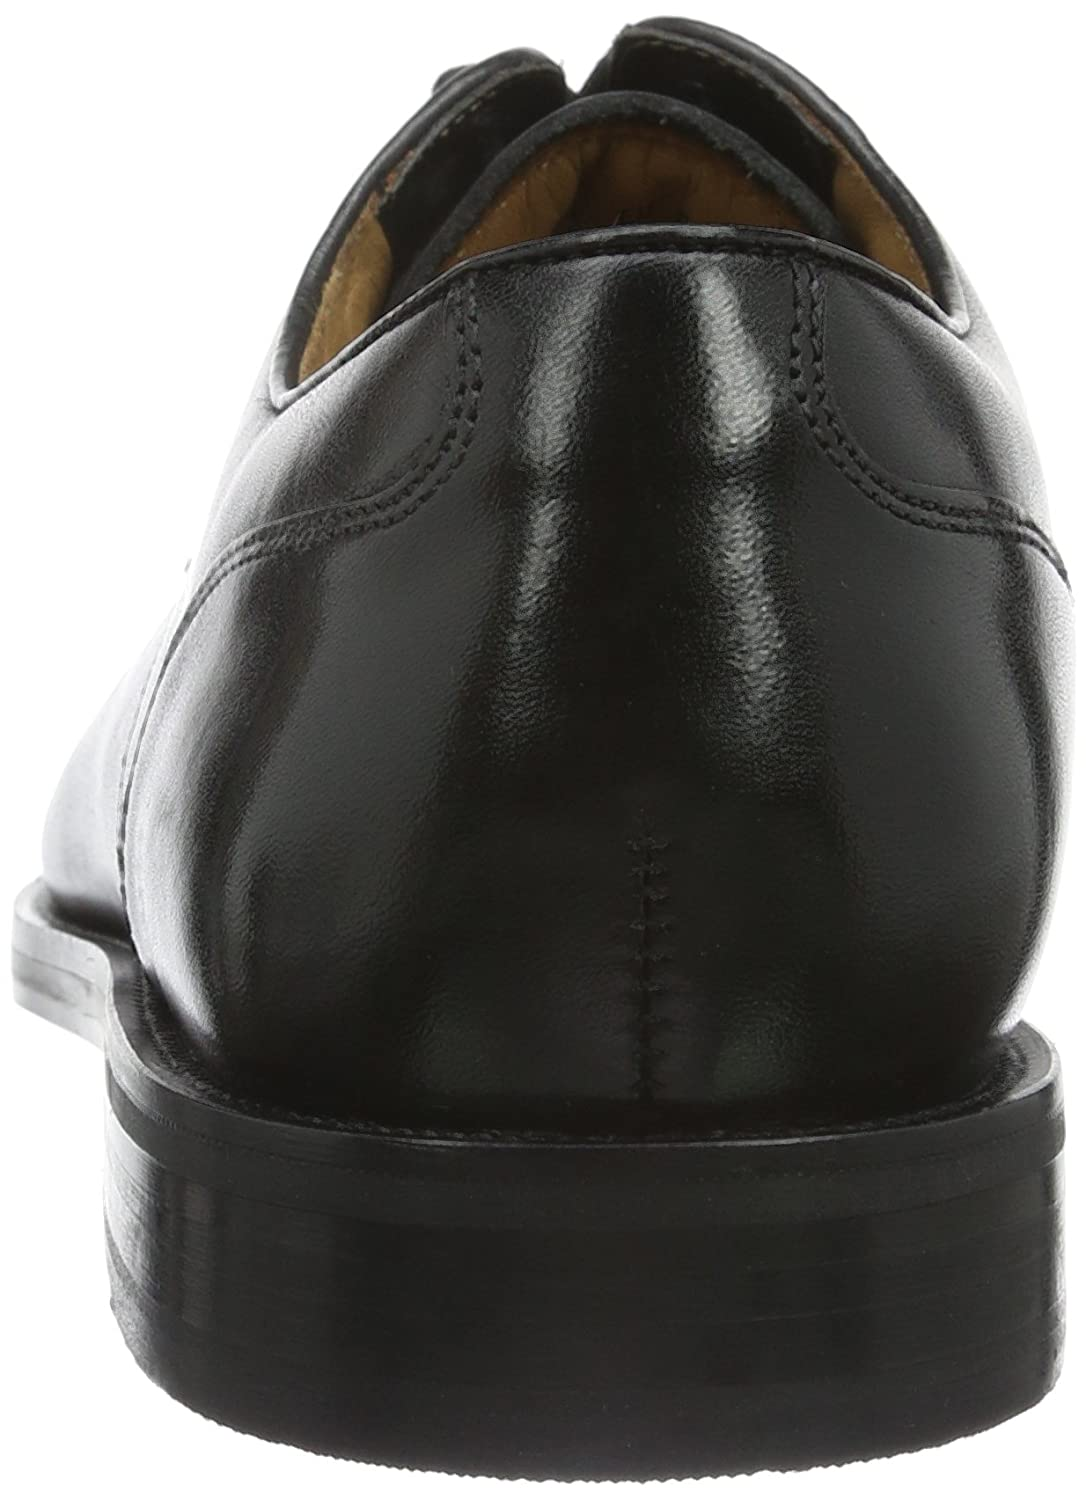 e30c8fceb6d3a Clarks Men s Coling Walk Leather Formal Shoes  Buy Online at Low Prices in  India - Amazon.in